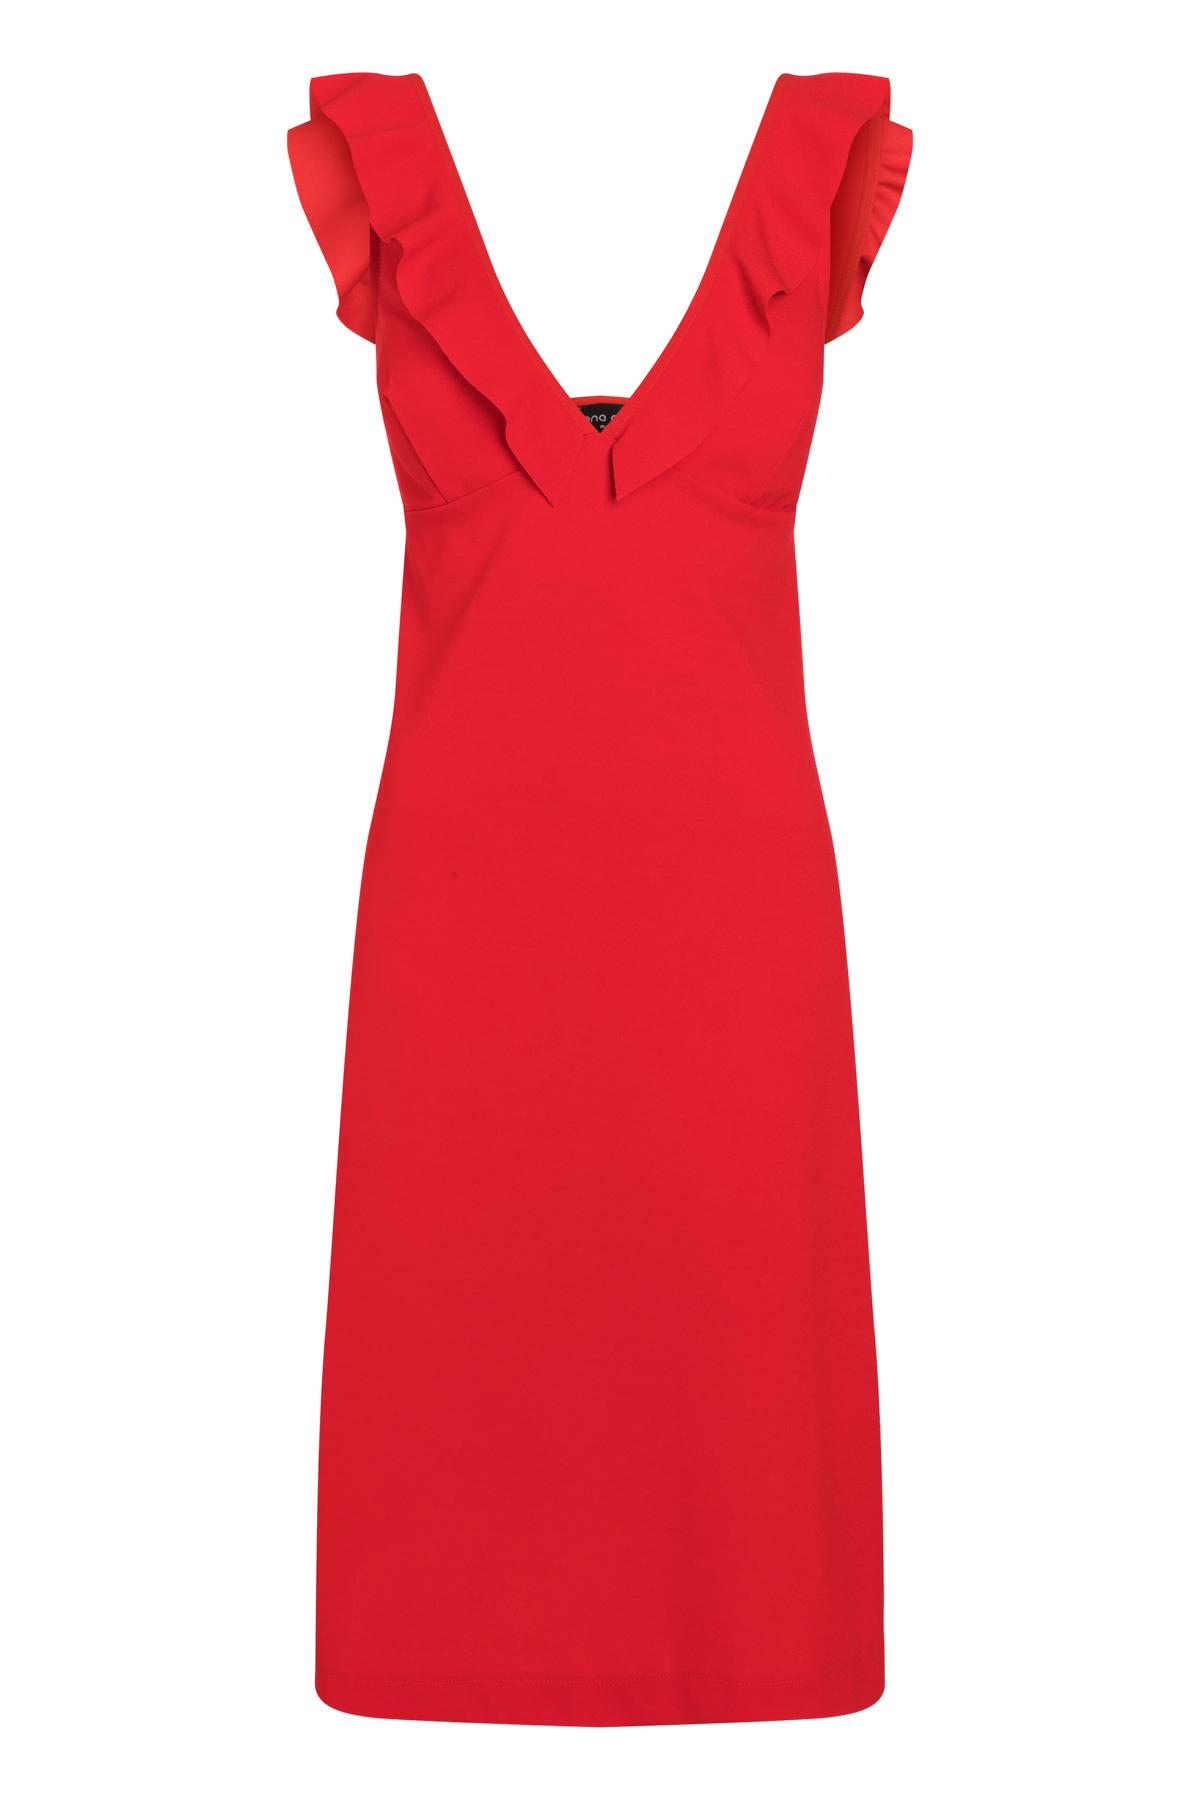 Ana Alcazar Flamenco Dress Sawona Red